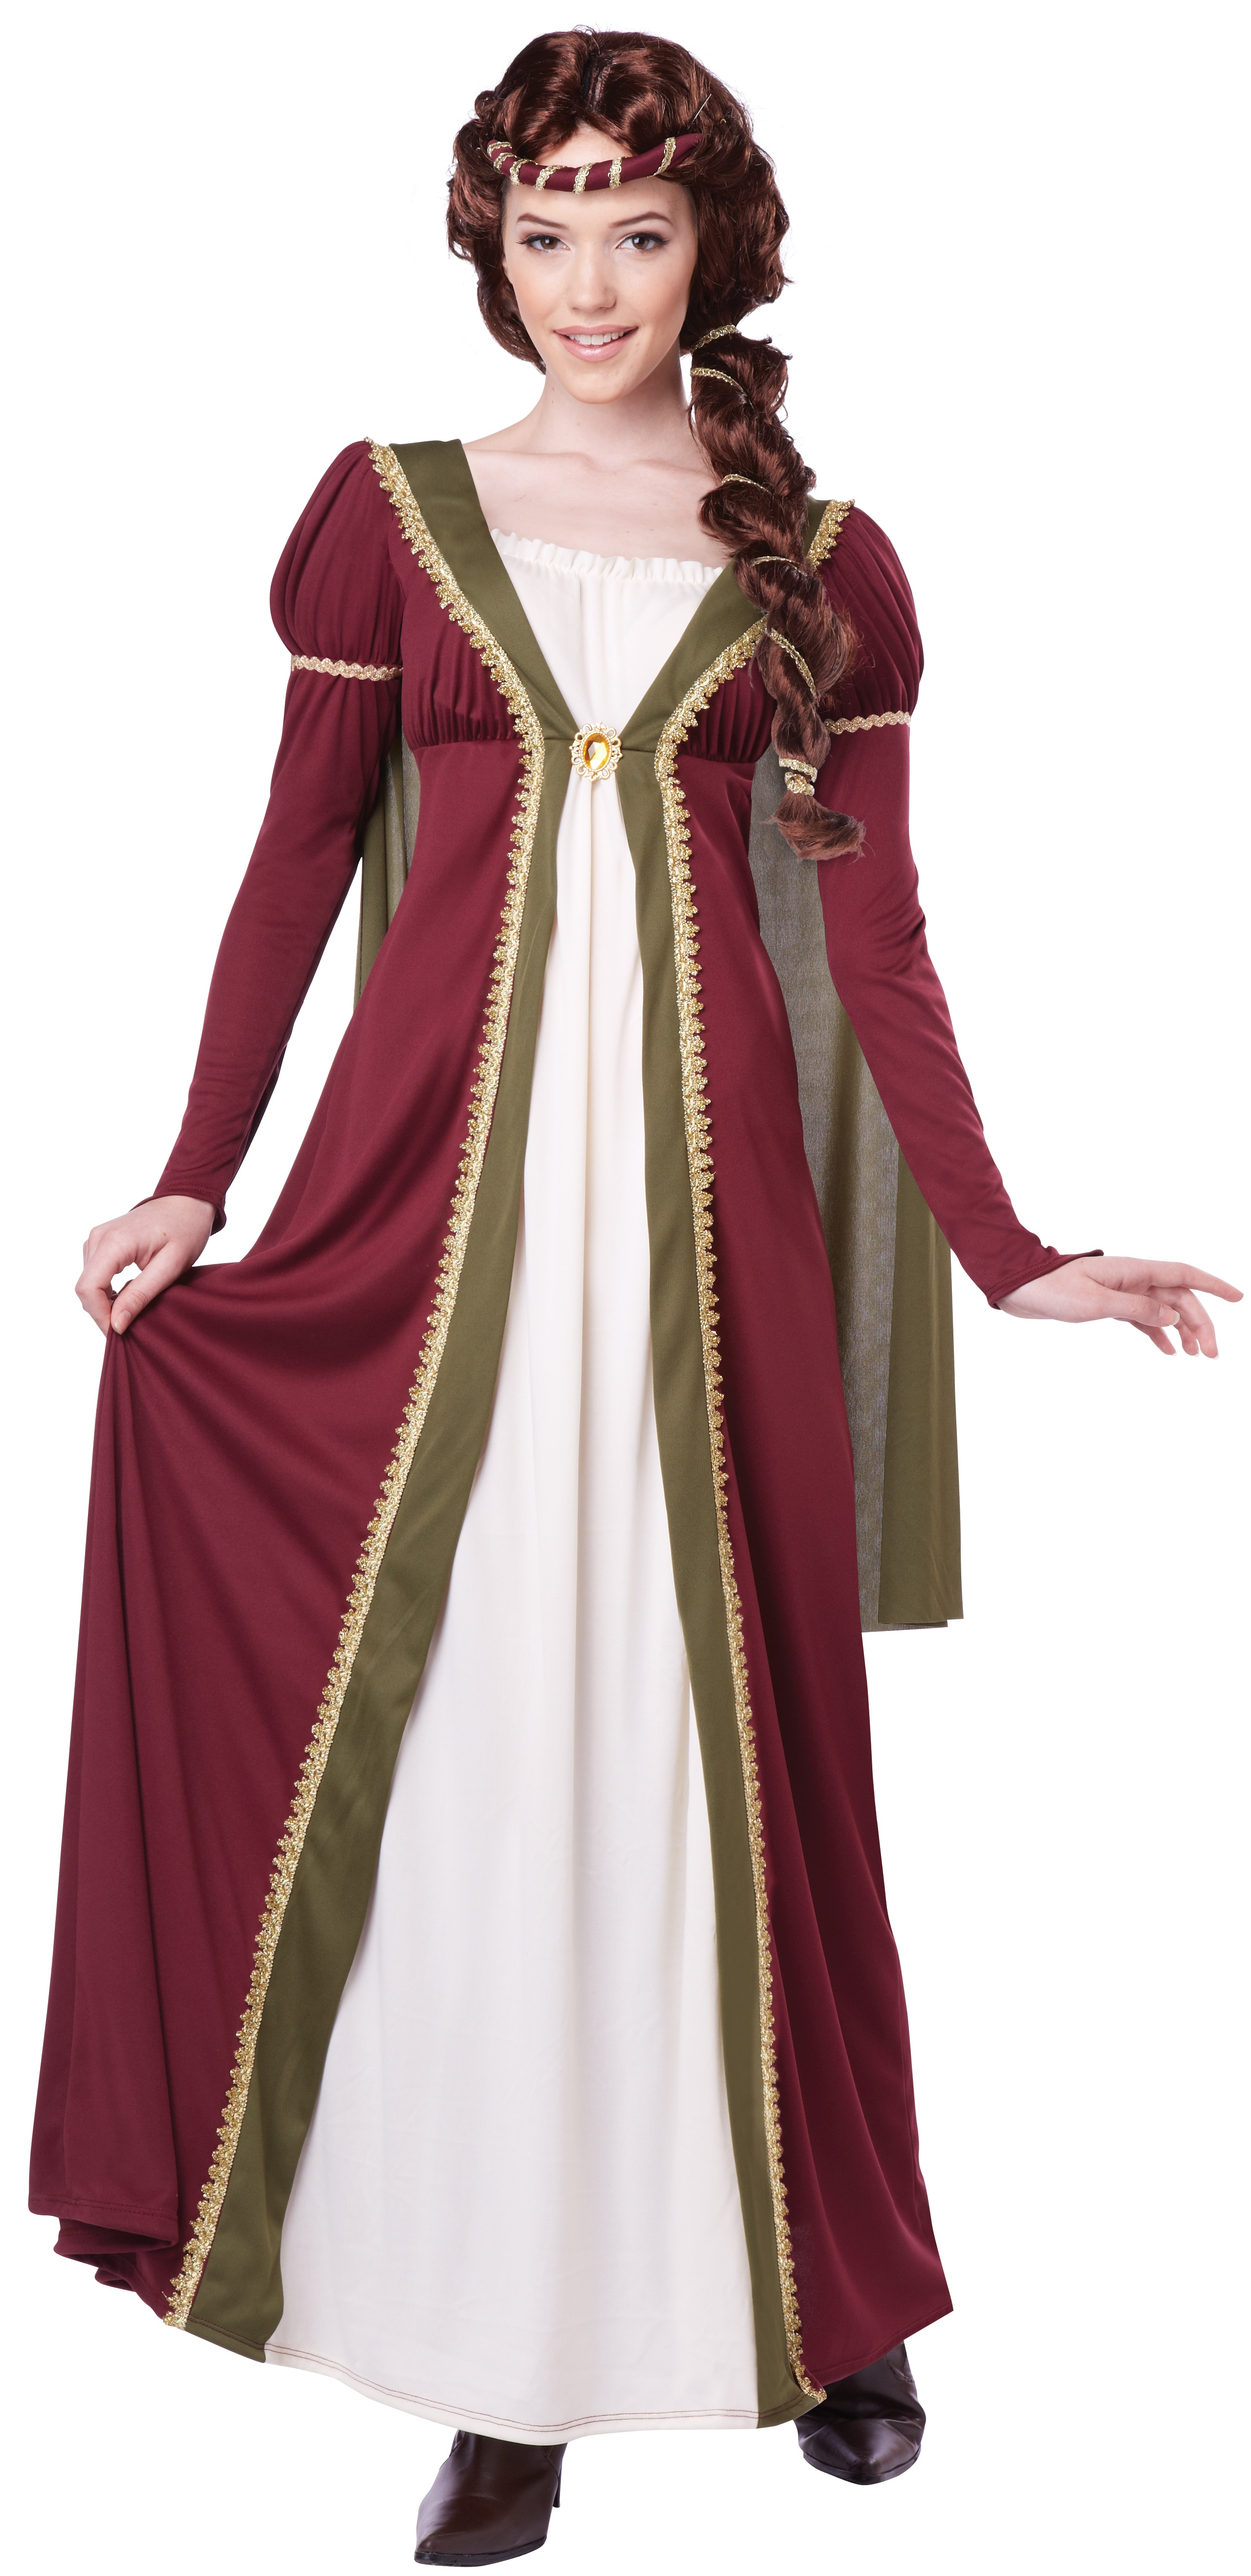 Medieval Maiden Adult Costume Mr Costumes